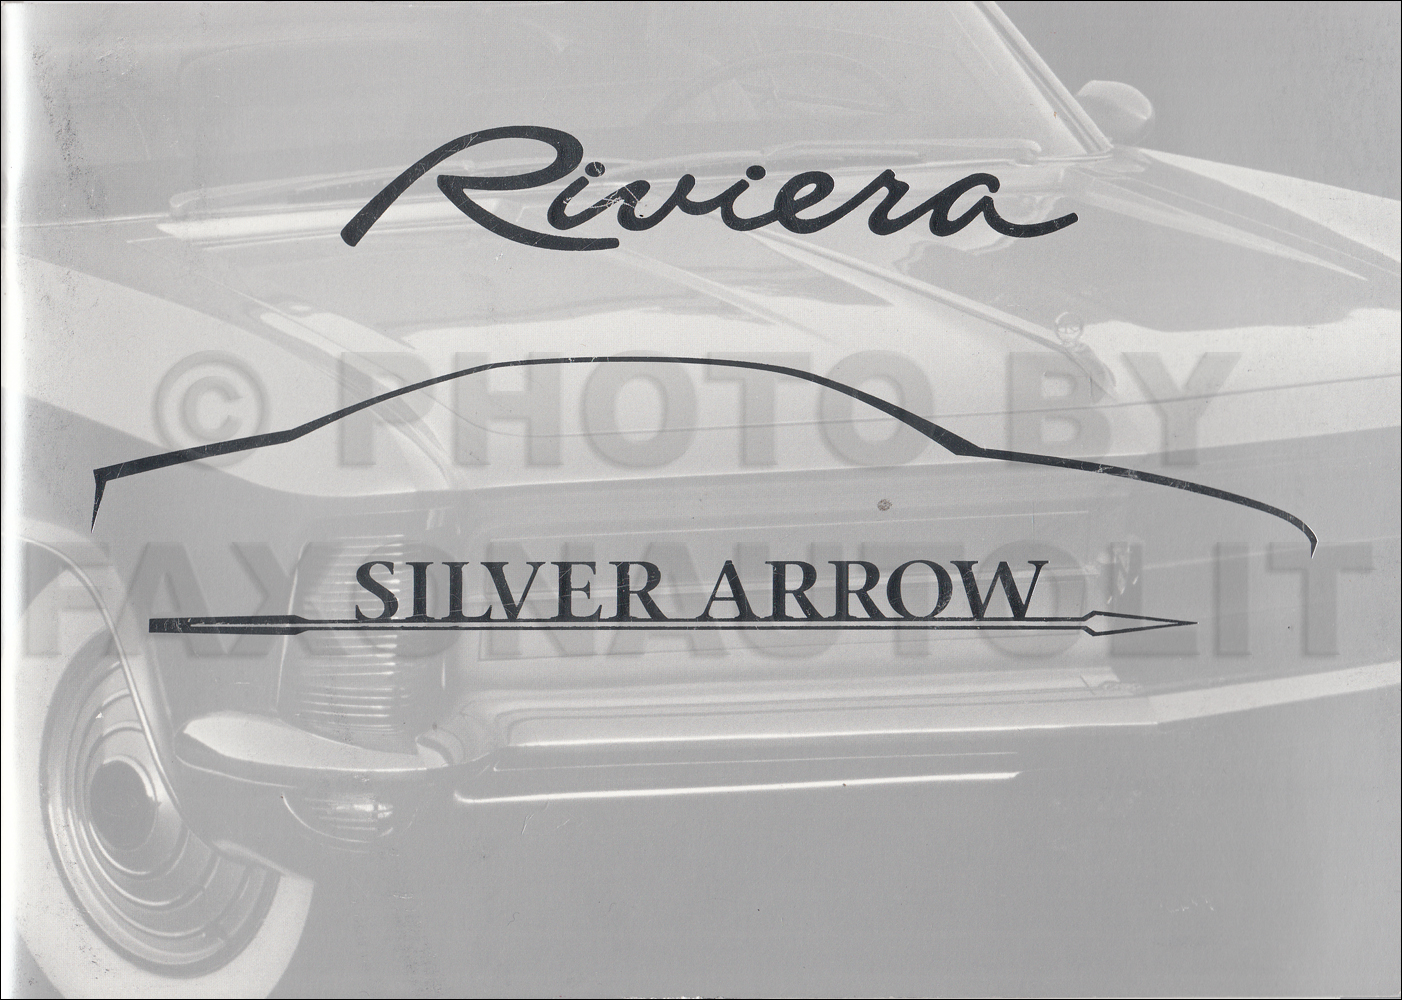 1999 Buick Riviera Silver Arrow Original Sales Catalog with 1963-1999  Riviera History